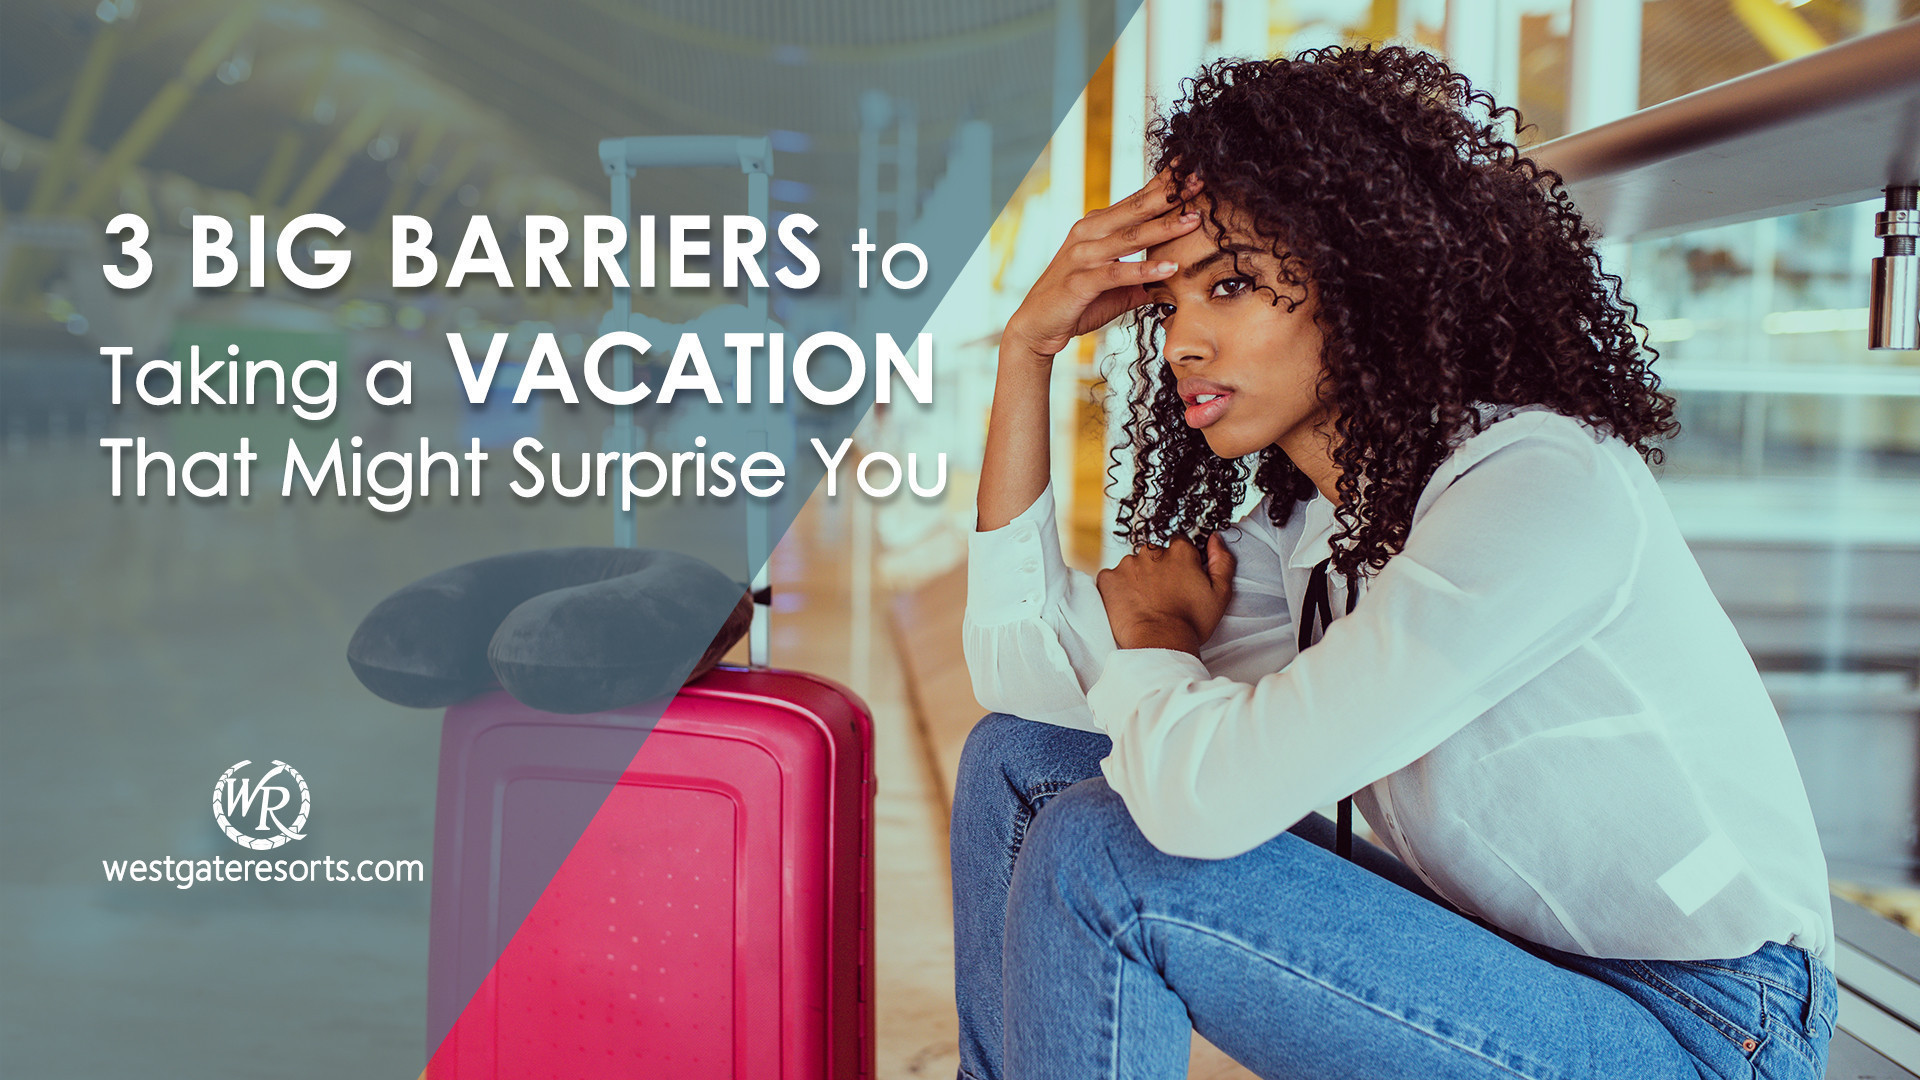 Barriers to Taking a Vacation | Vacation Hacks & Tips | Westgate Resorts